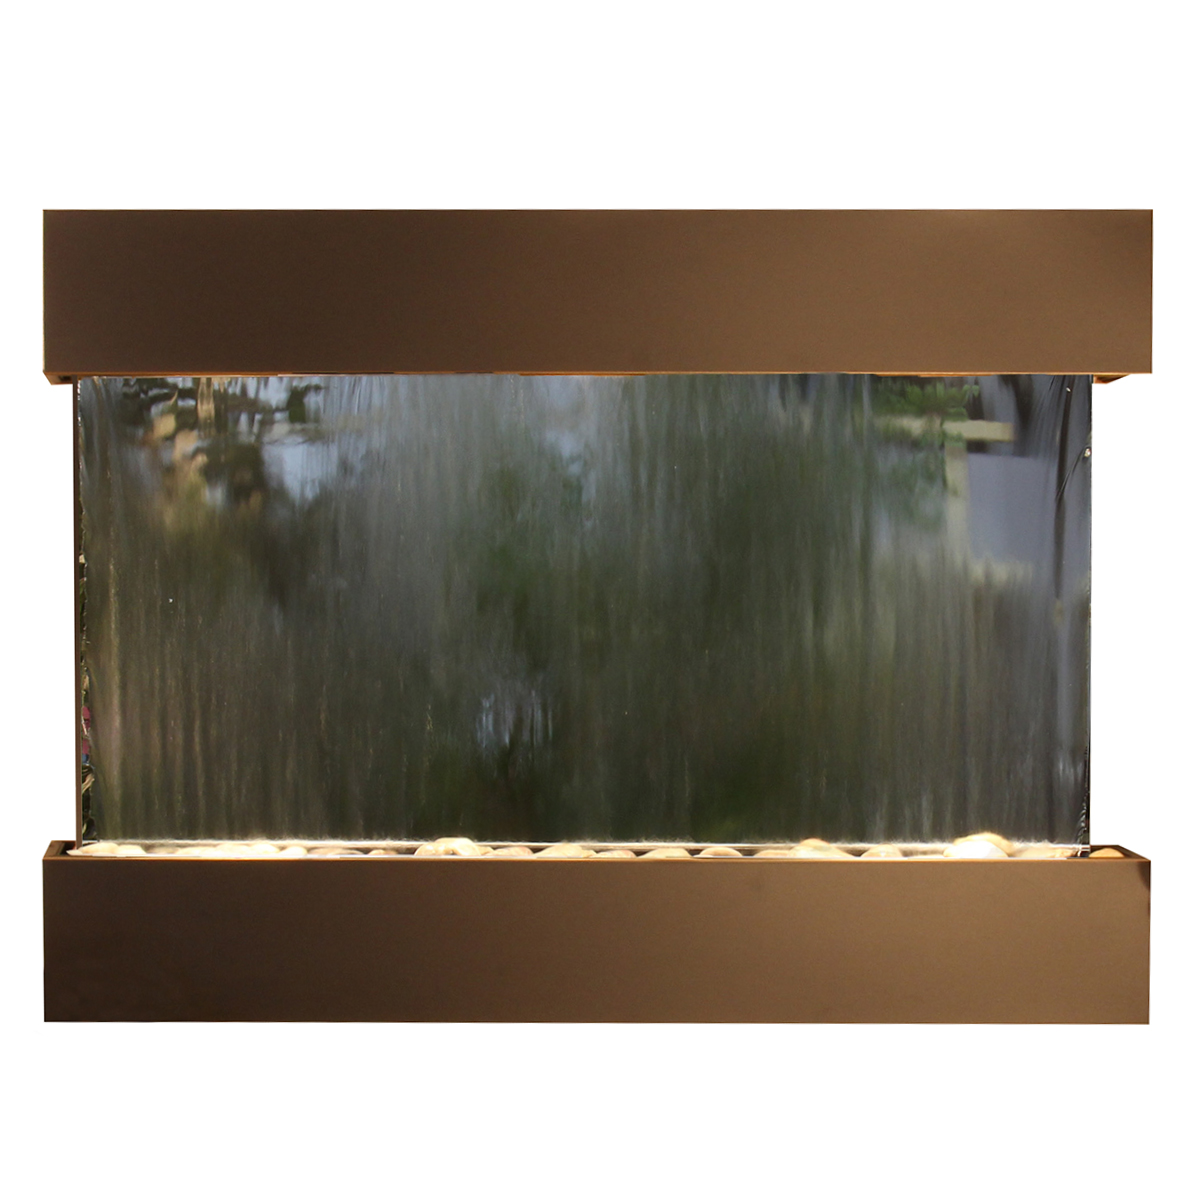 525 Product Image